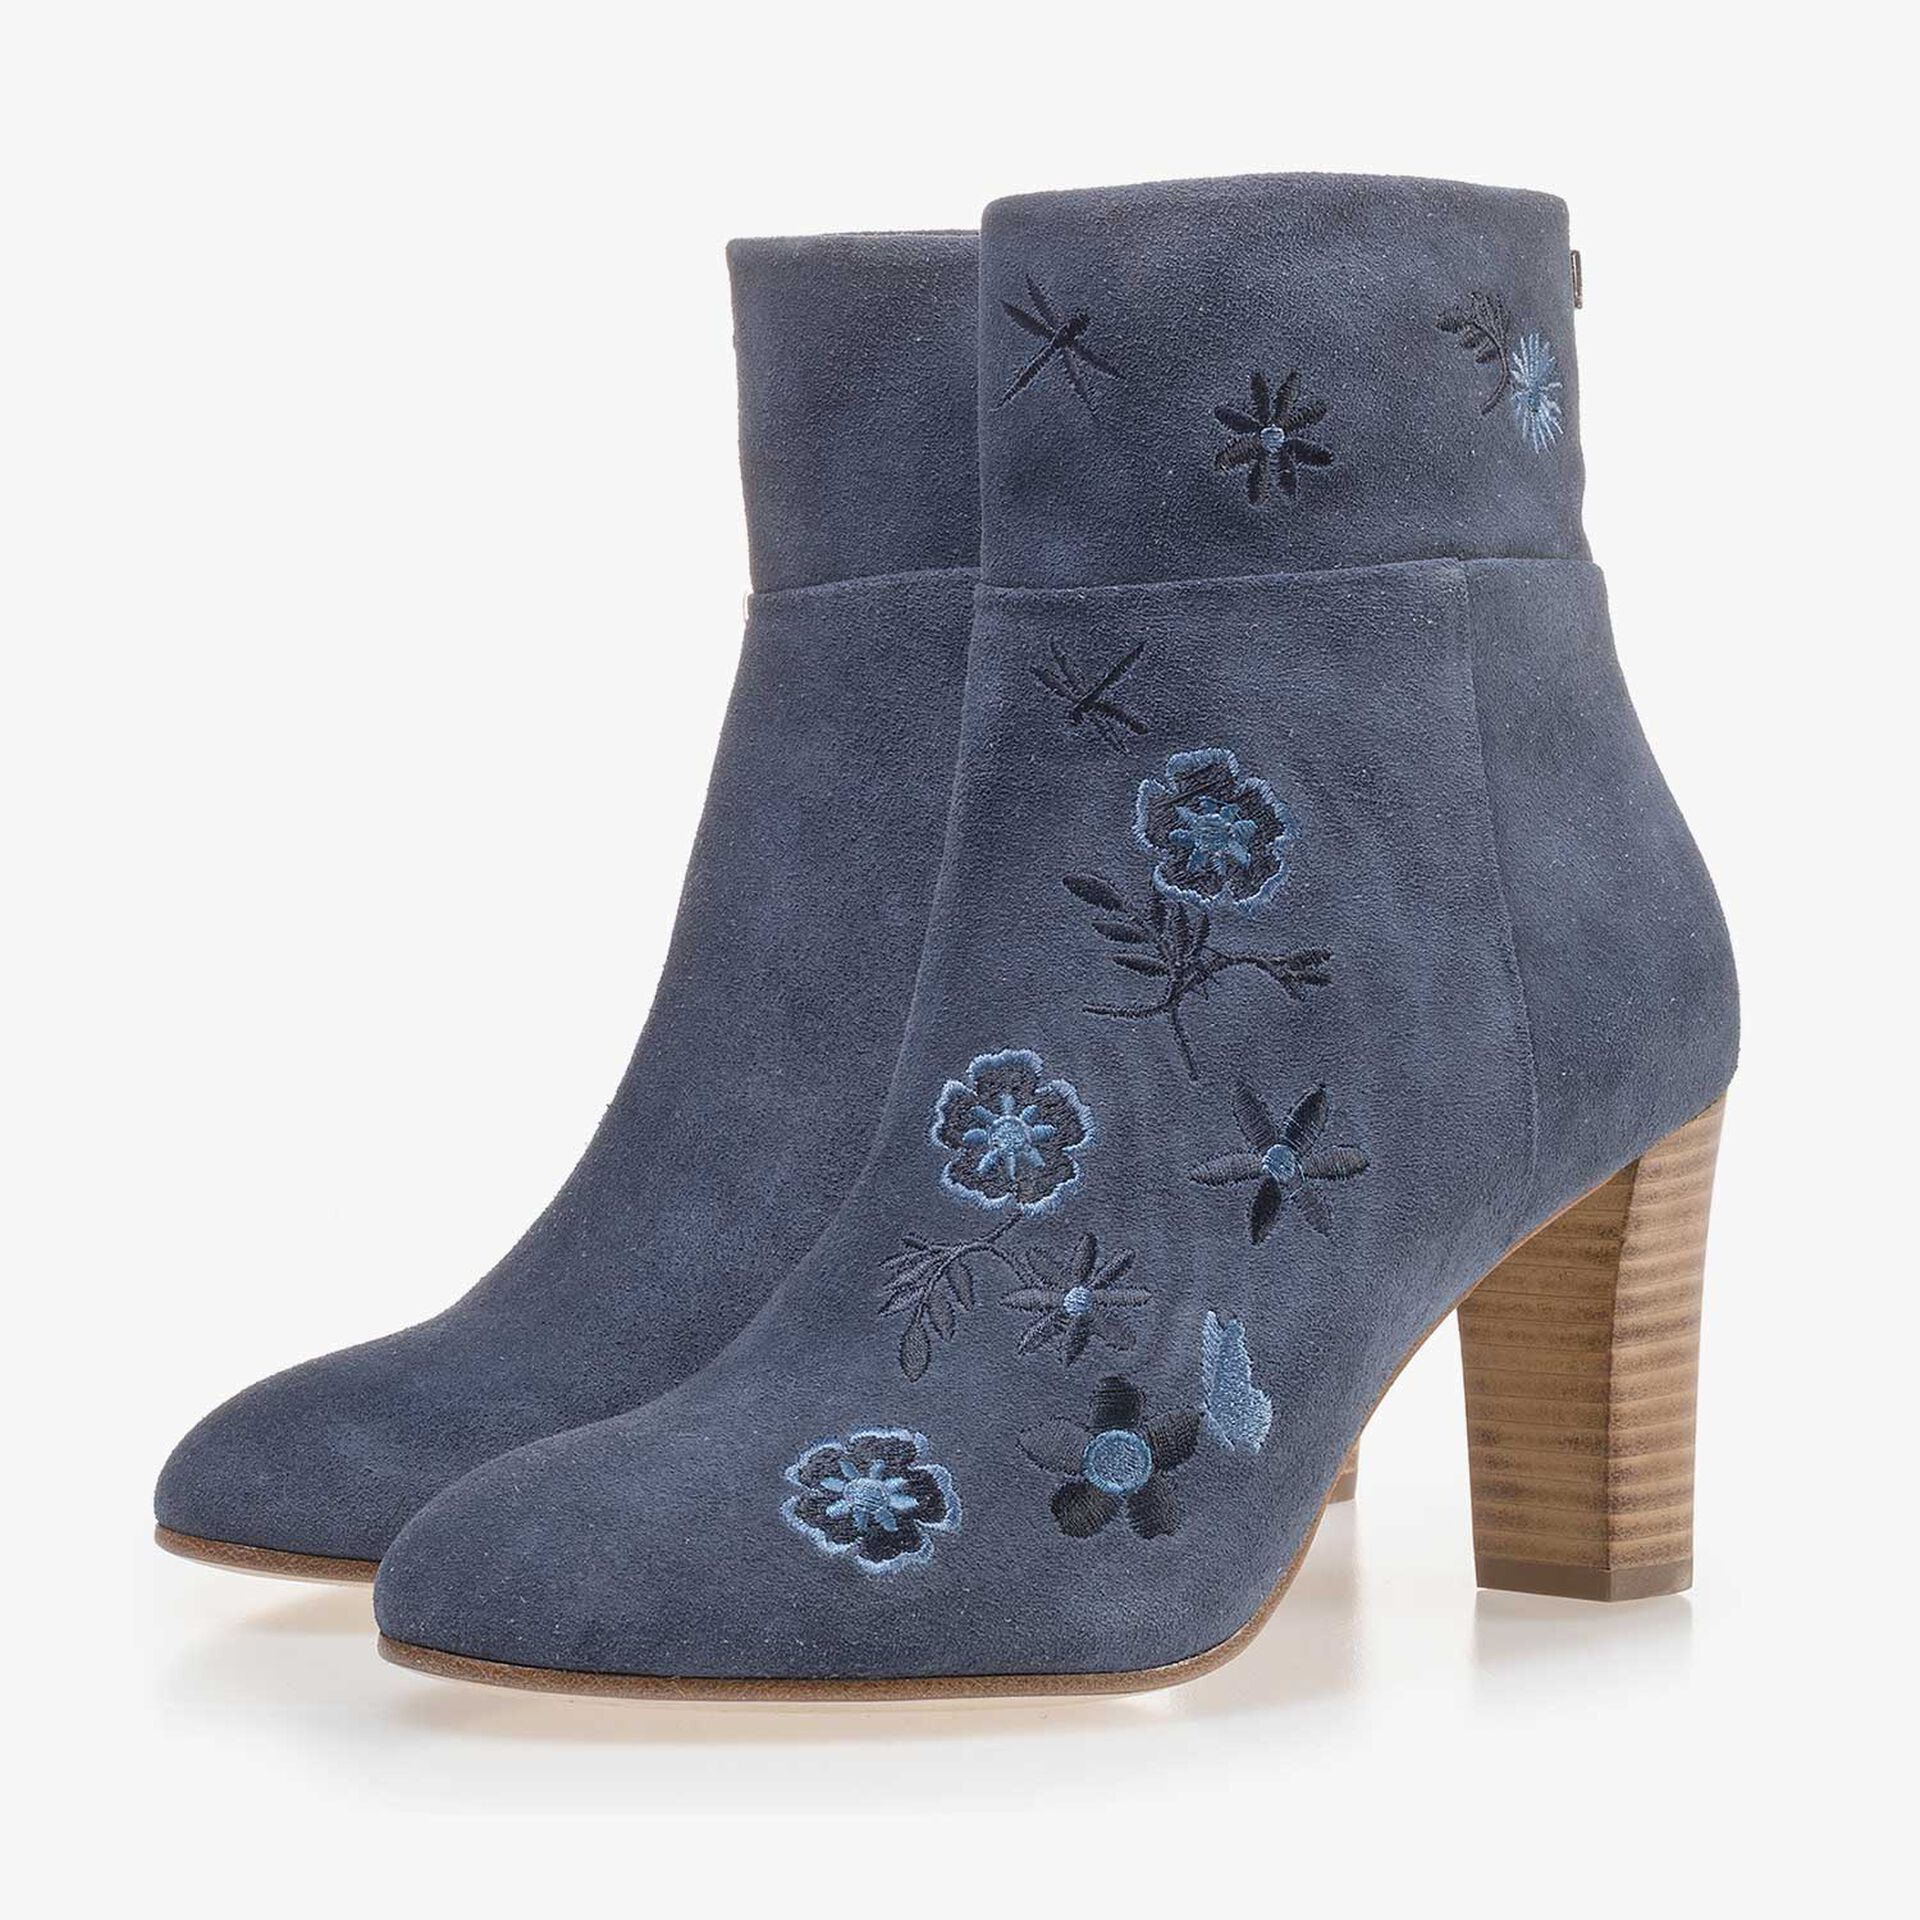 Blue calf's suede leather ankle boot with floral embroidery stitching